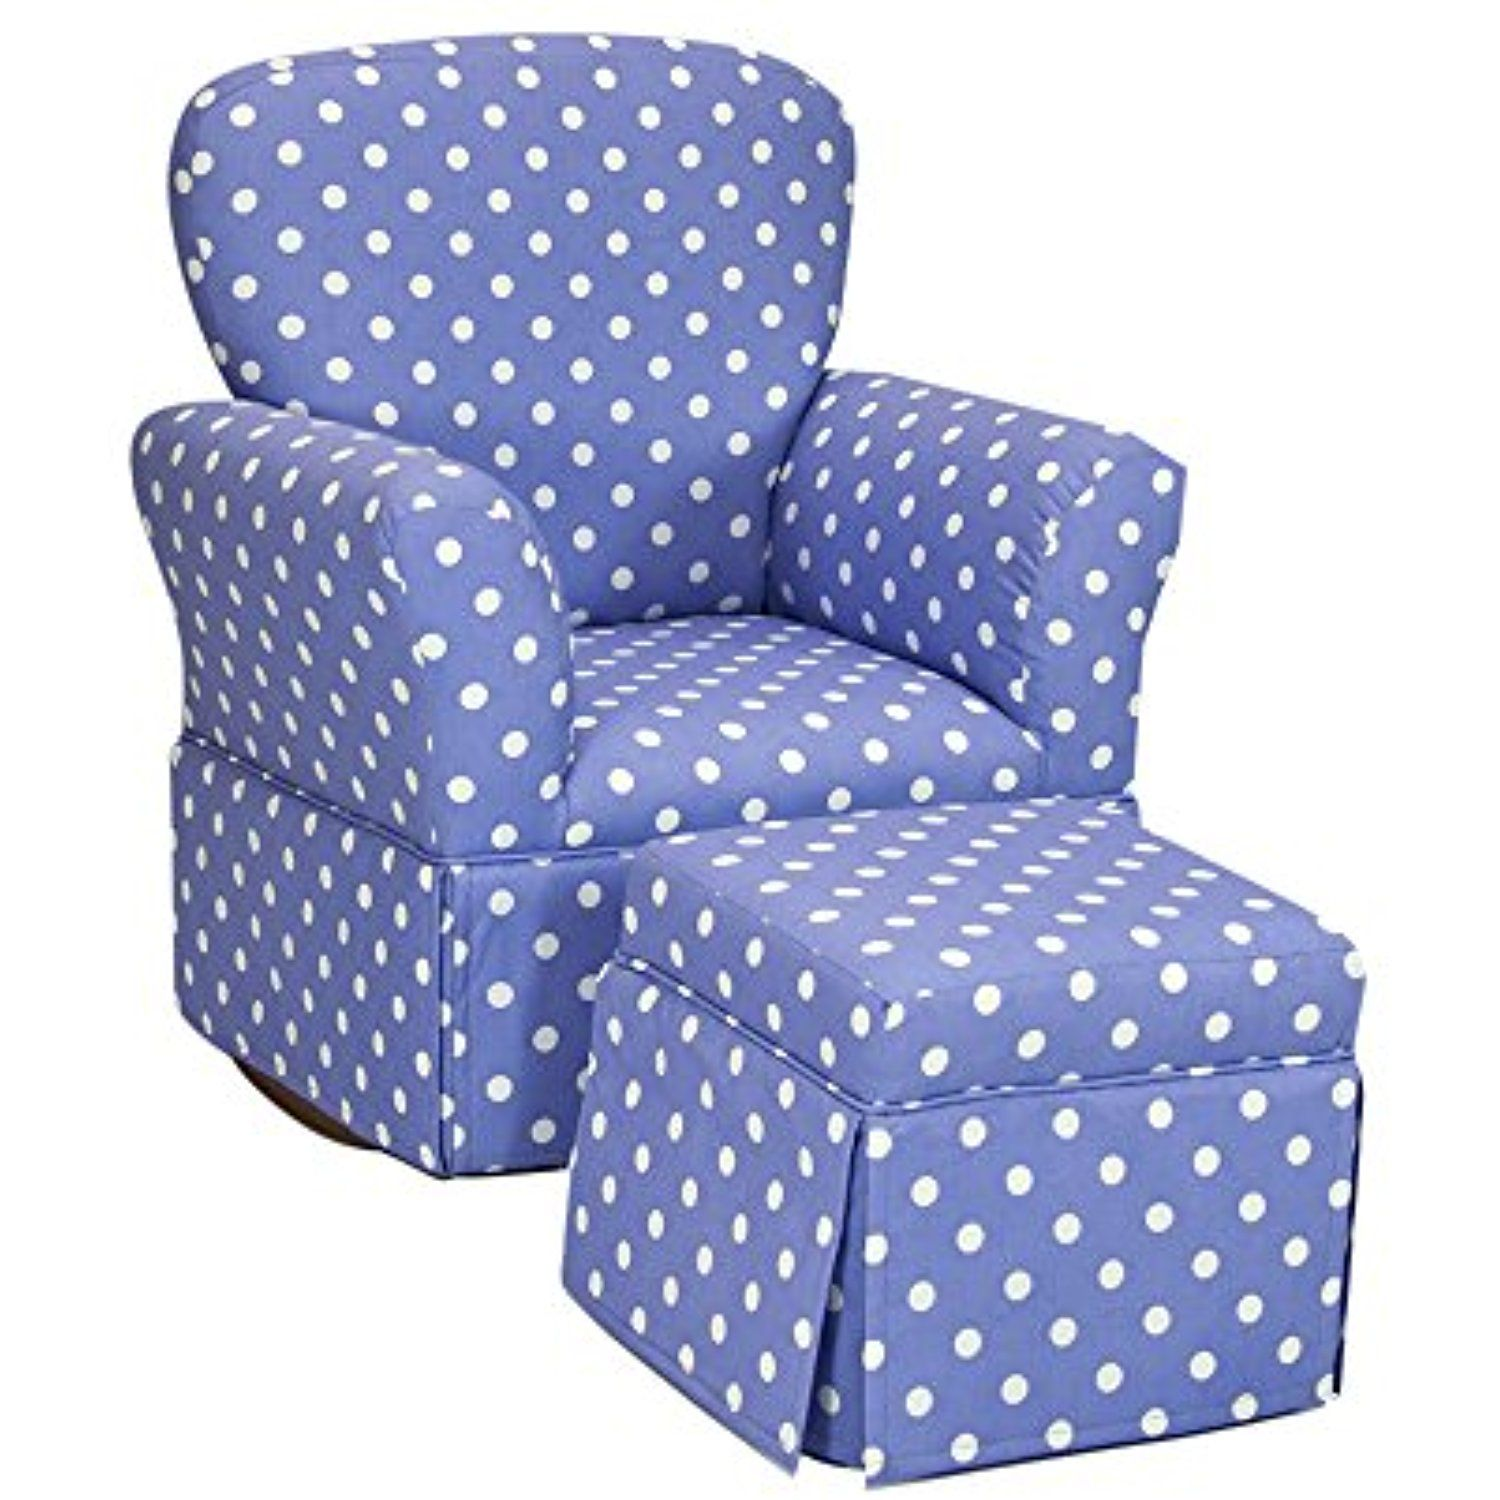 Polka Dots Lilac KidsFurnitureDcorStorage Kids rocking